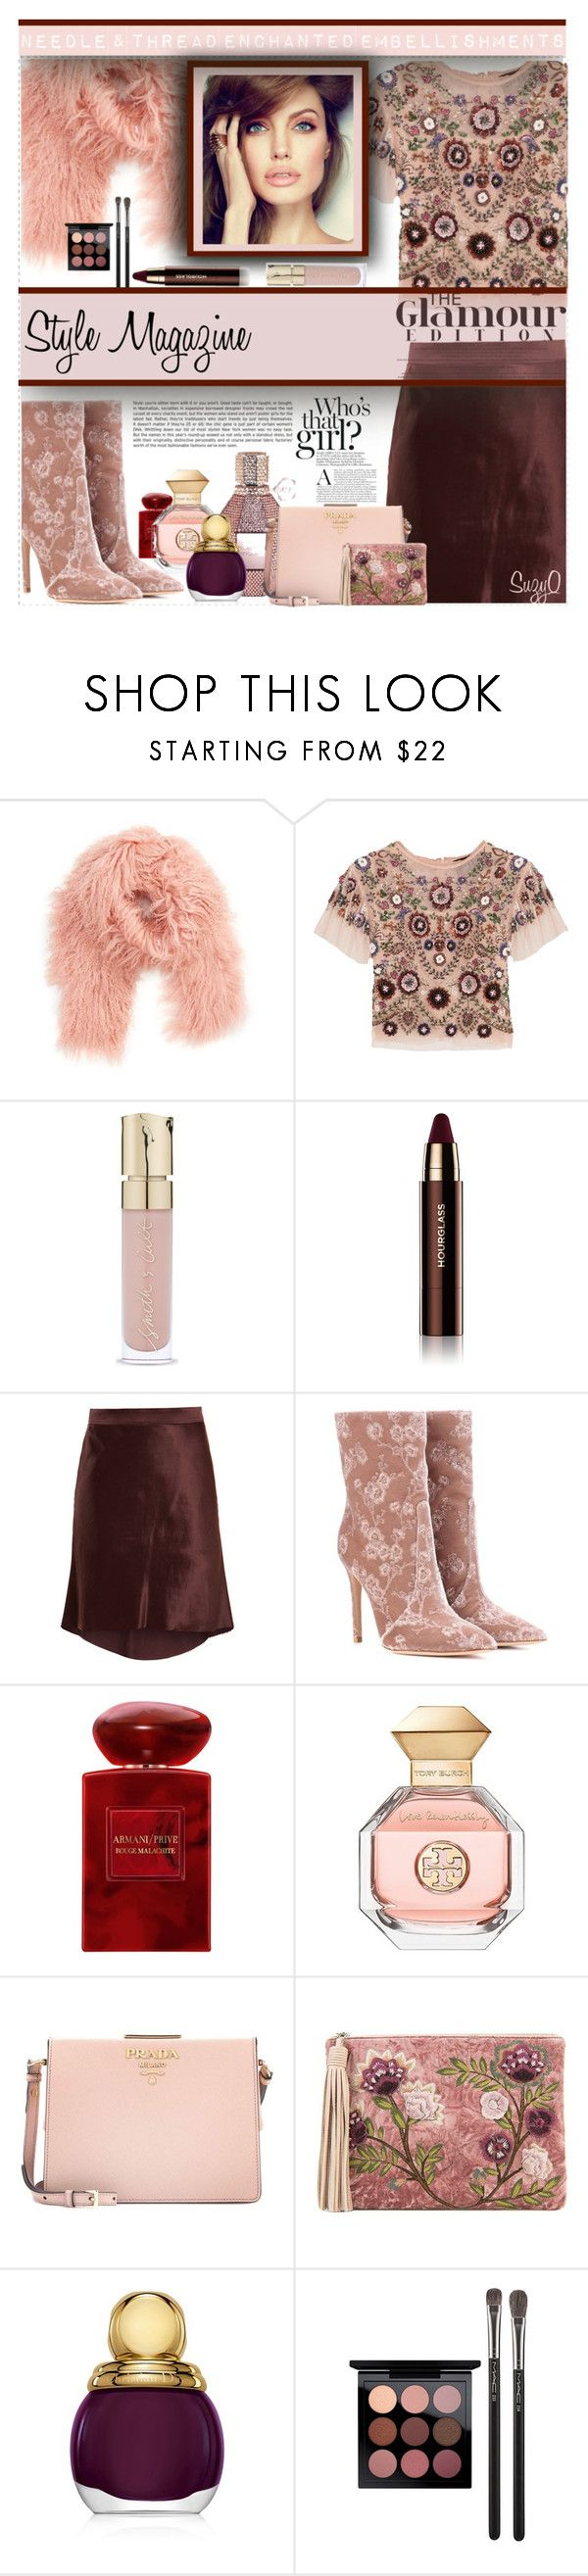 """MILLINNIAL PINK TREND: Style Magazine"" by polyvore-suzyq ❤ liked on Polyvore featuring Toria Rose, Needle & Thread, Smith & Cult, Hourglass Cosmetics, Raey, Gianvito Rossi, Armani Beauty, Tory Burch, Prada and Sam Edelman"